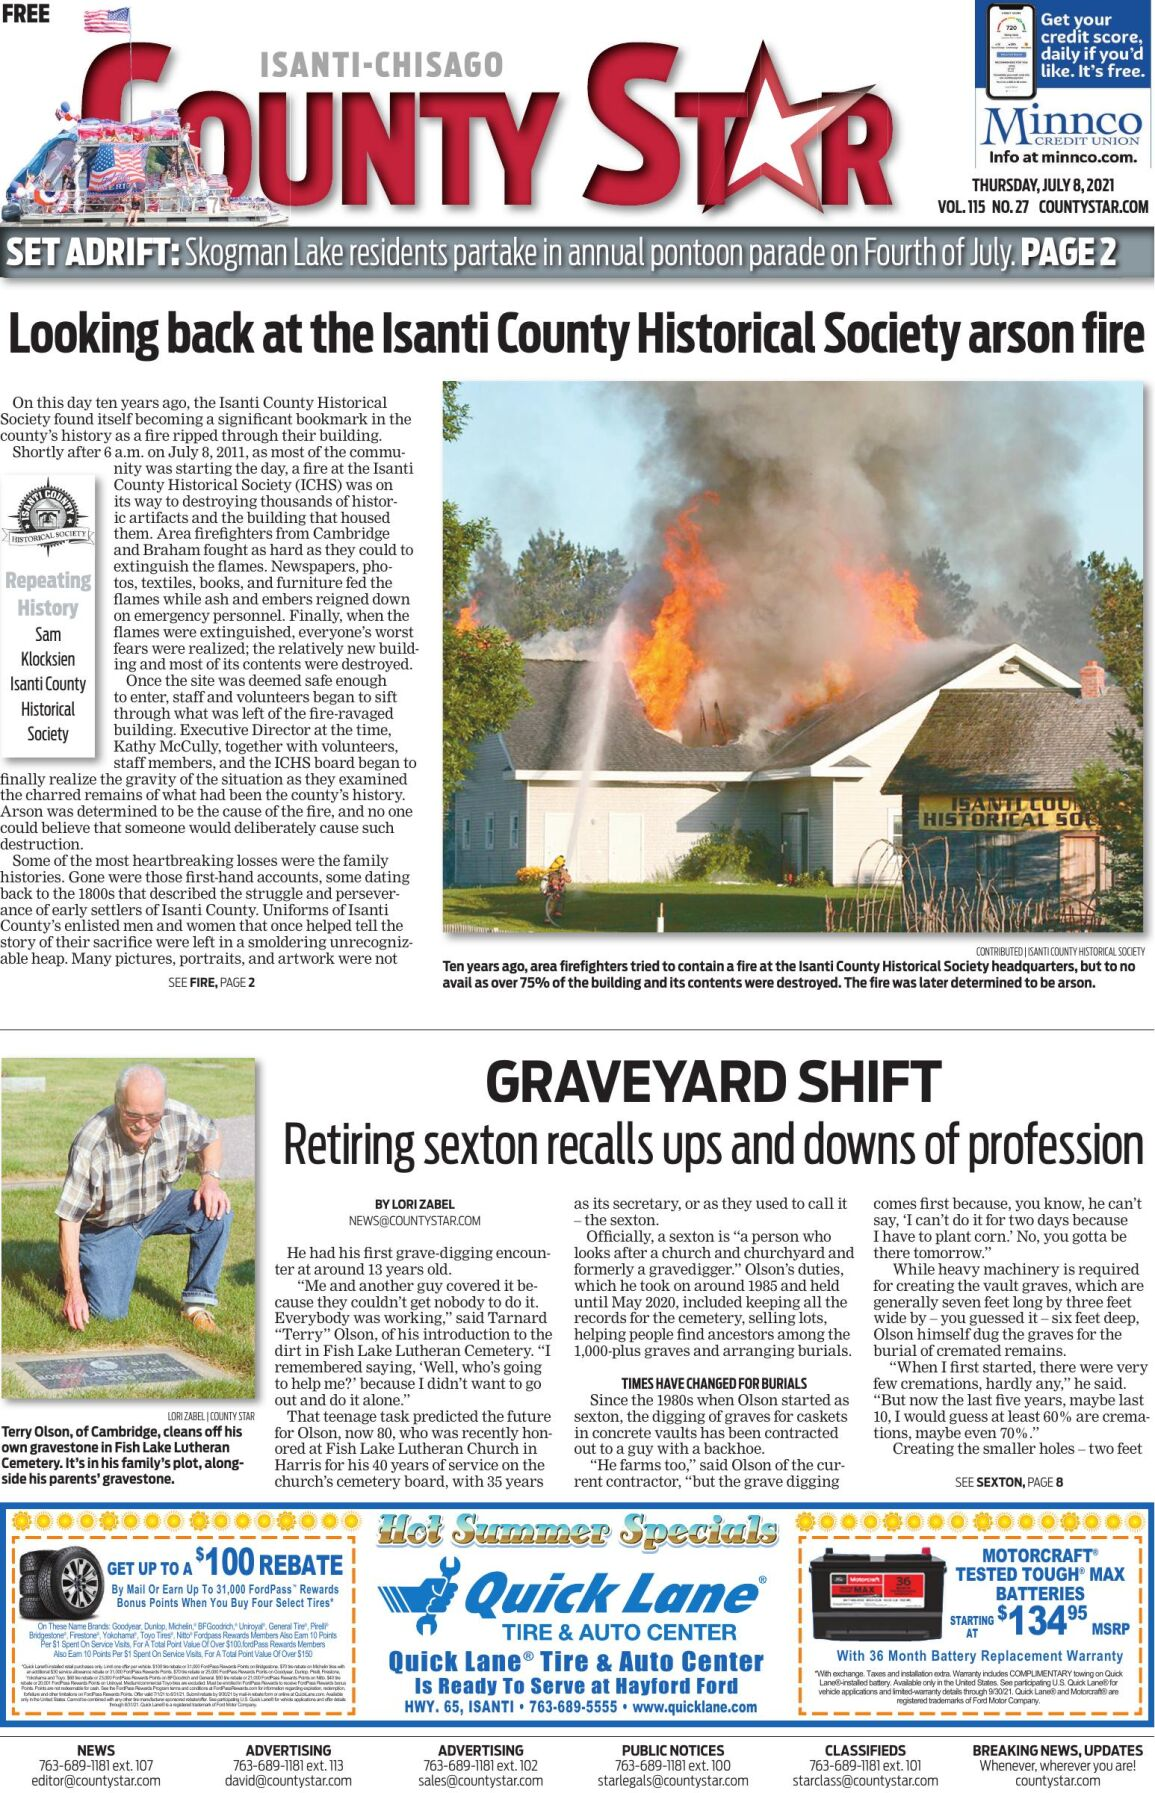 Isanti-Chisago County Star July 8, 2021 e-edition